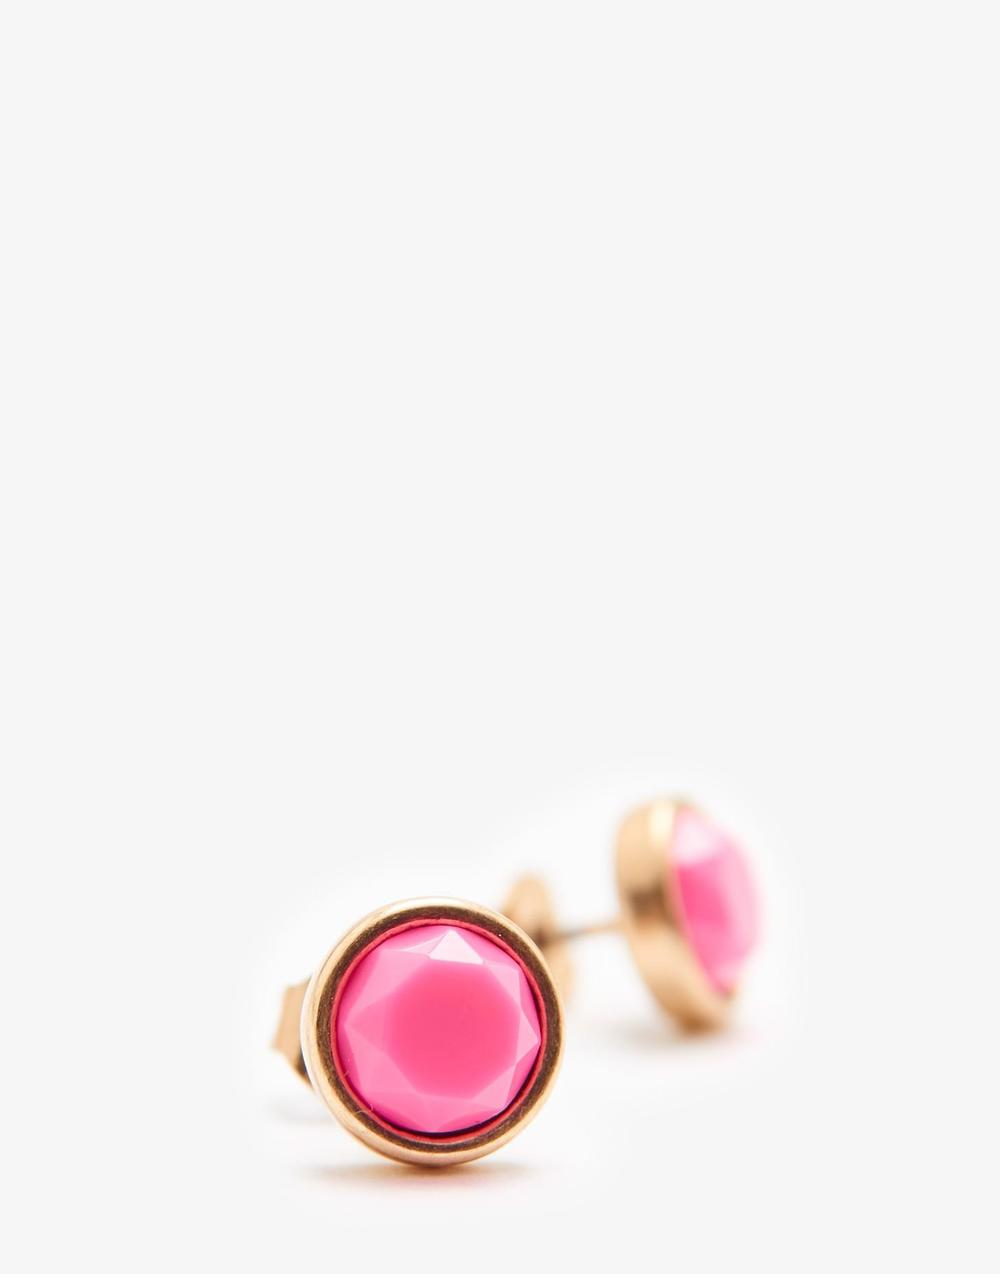 JOULES - ELDORA STUD EARRINGS IN NEON CANDY - £6.95